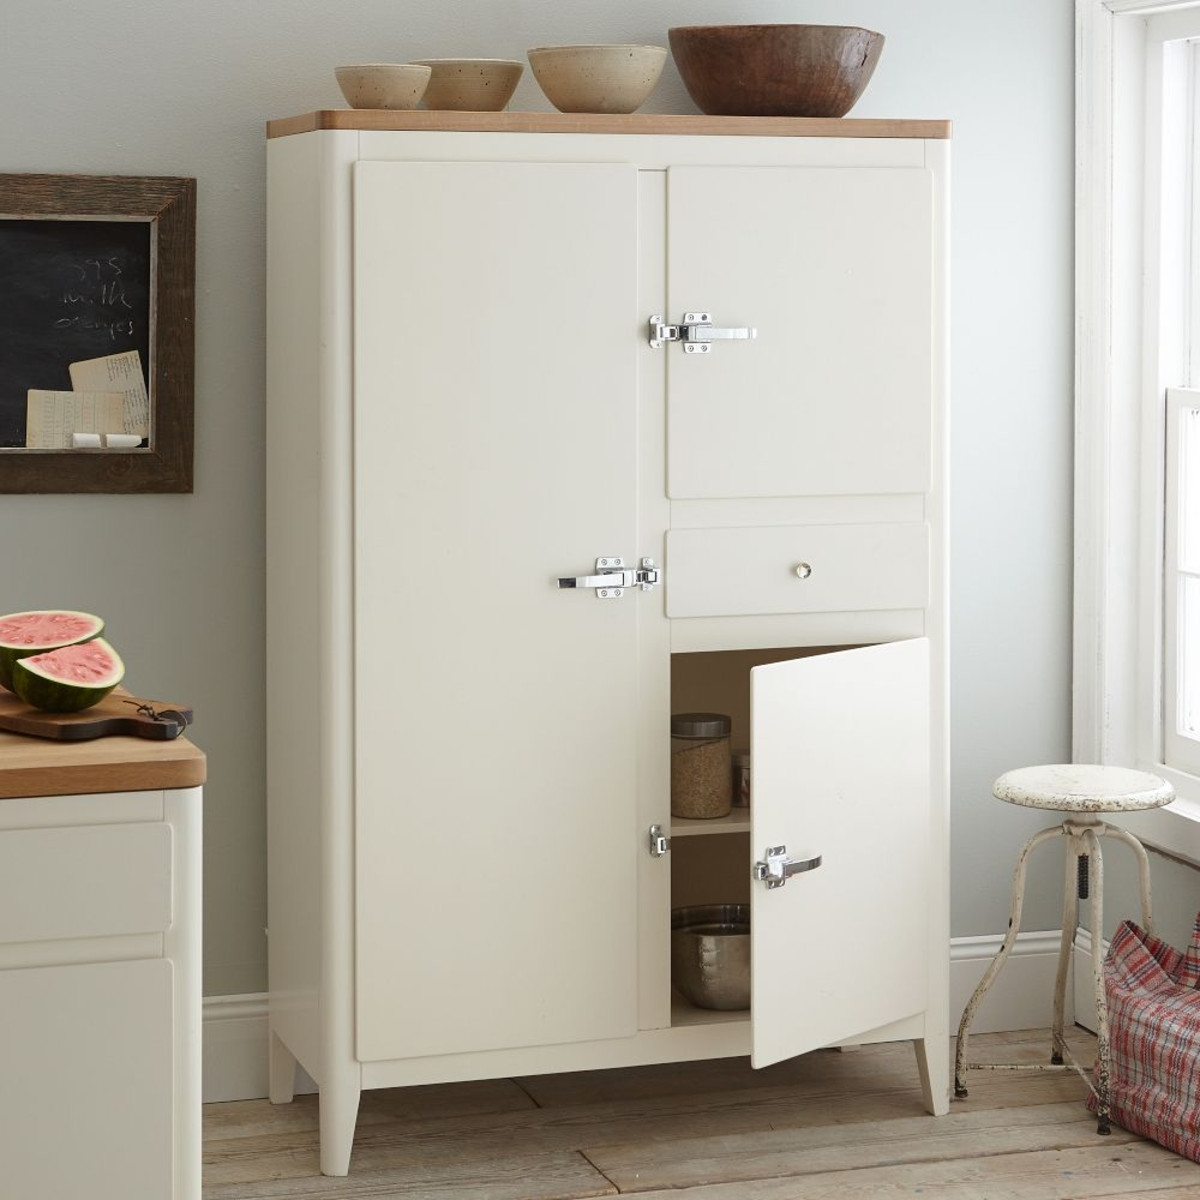 Kitchen Cabinet Images Free Mptstudio Decoration Inside Free Cupboards (Image 9 of 15)